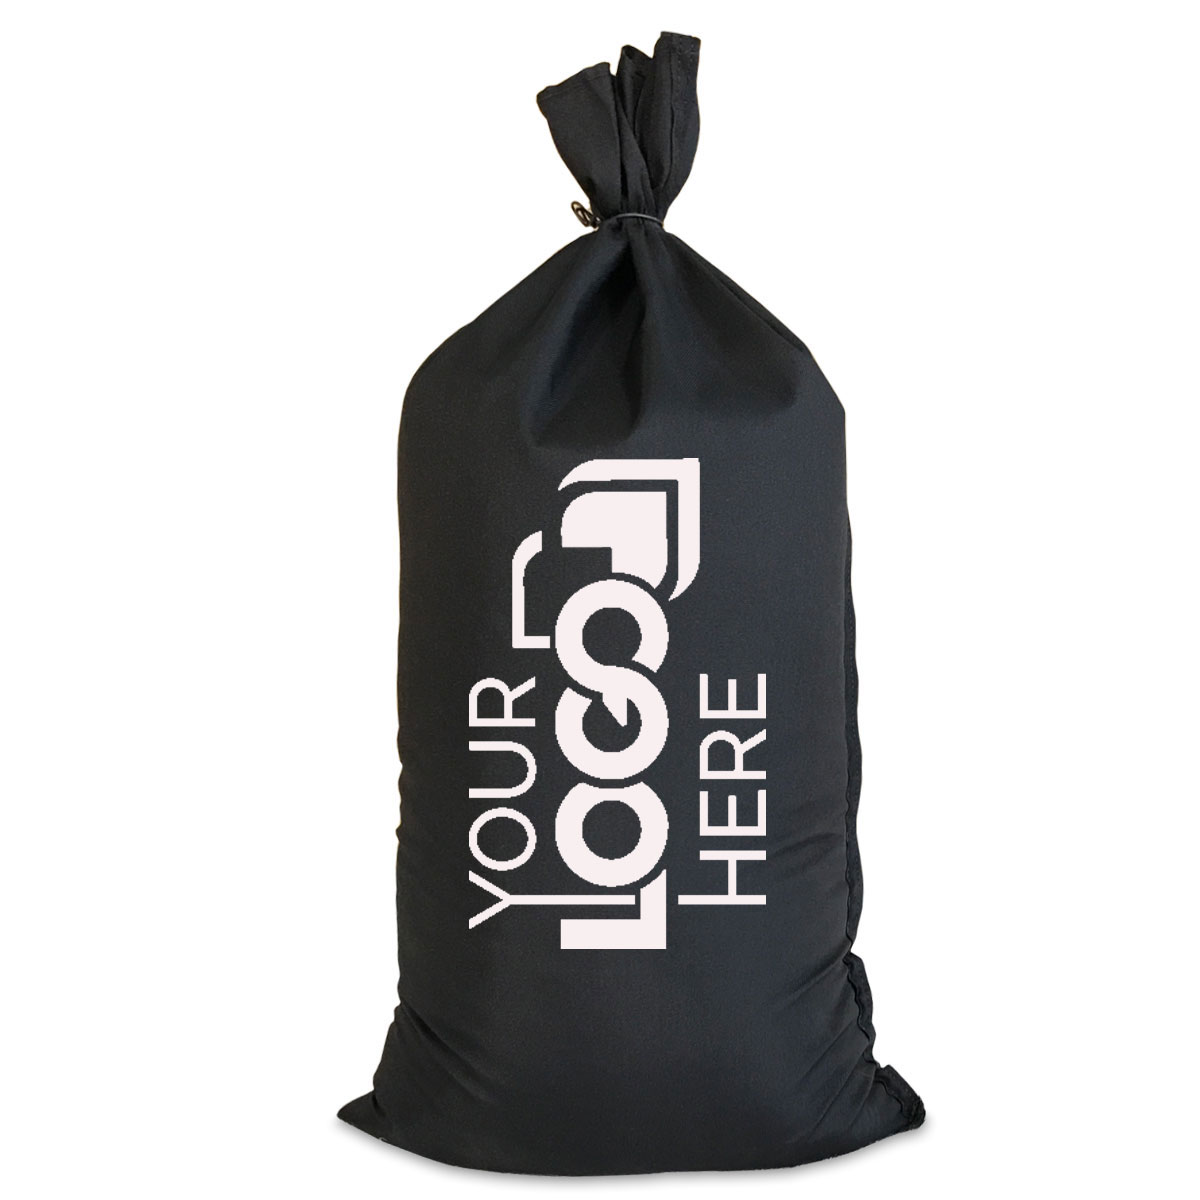 34aa8df7ce0 Ace Logo Sandbags - Logo Printed Canvas Sandbags - The Sandbag Store